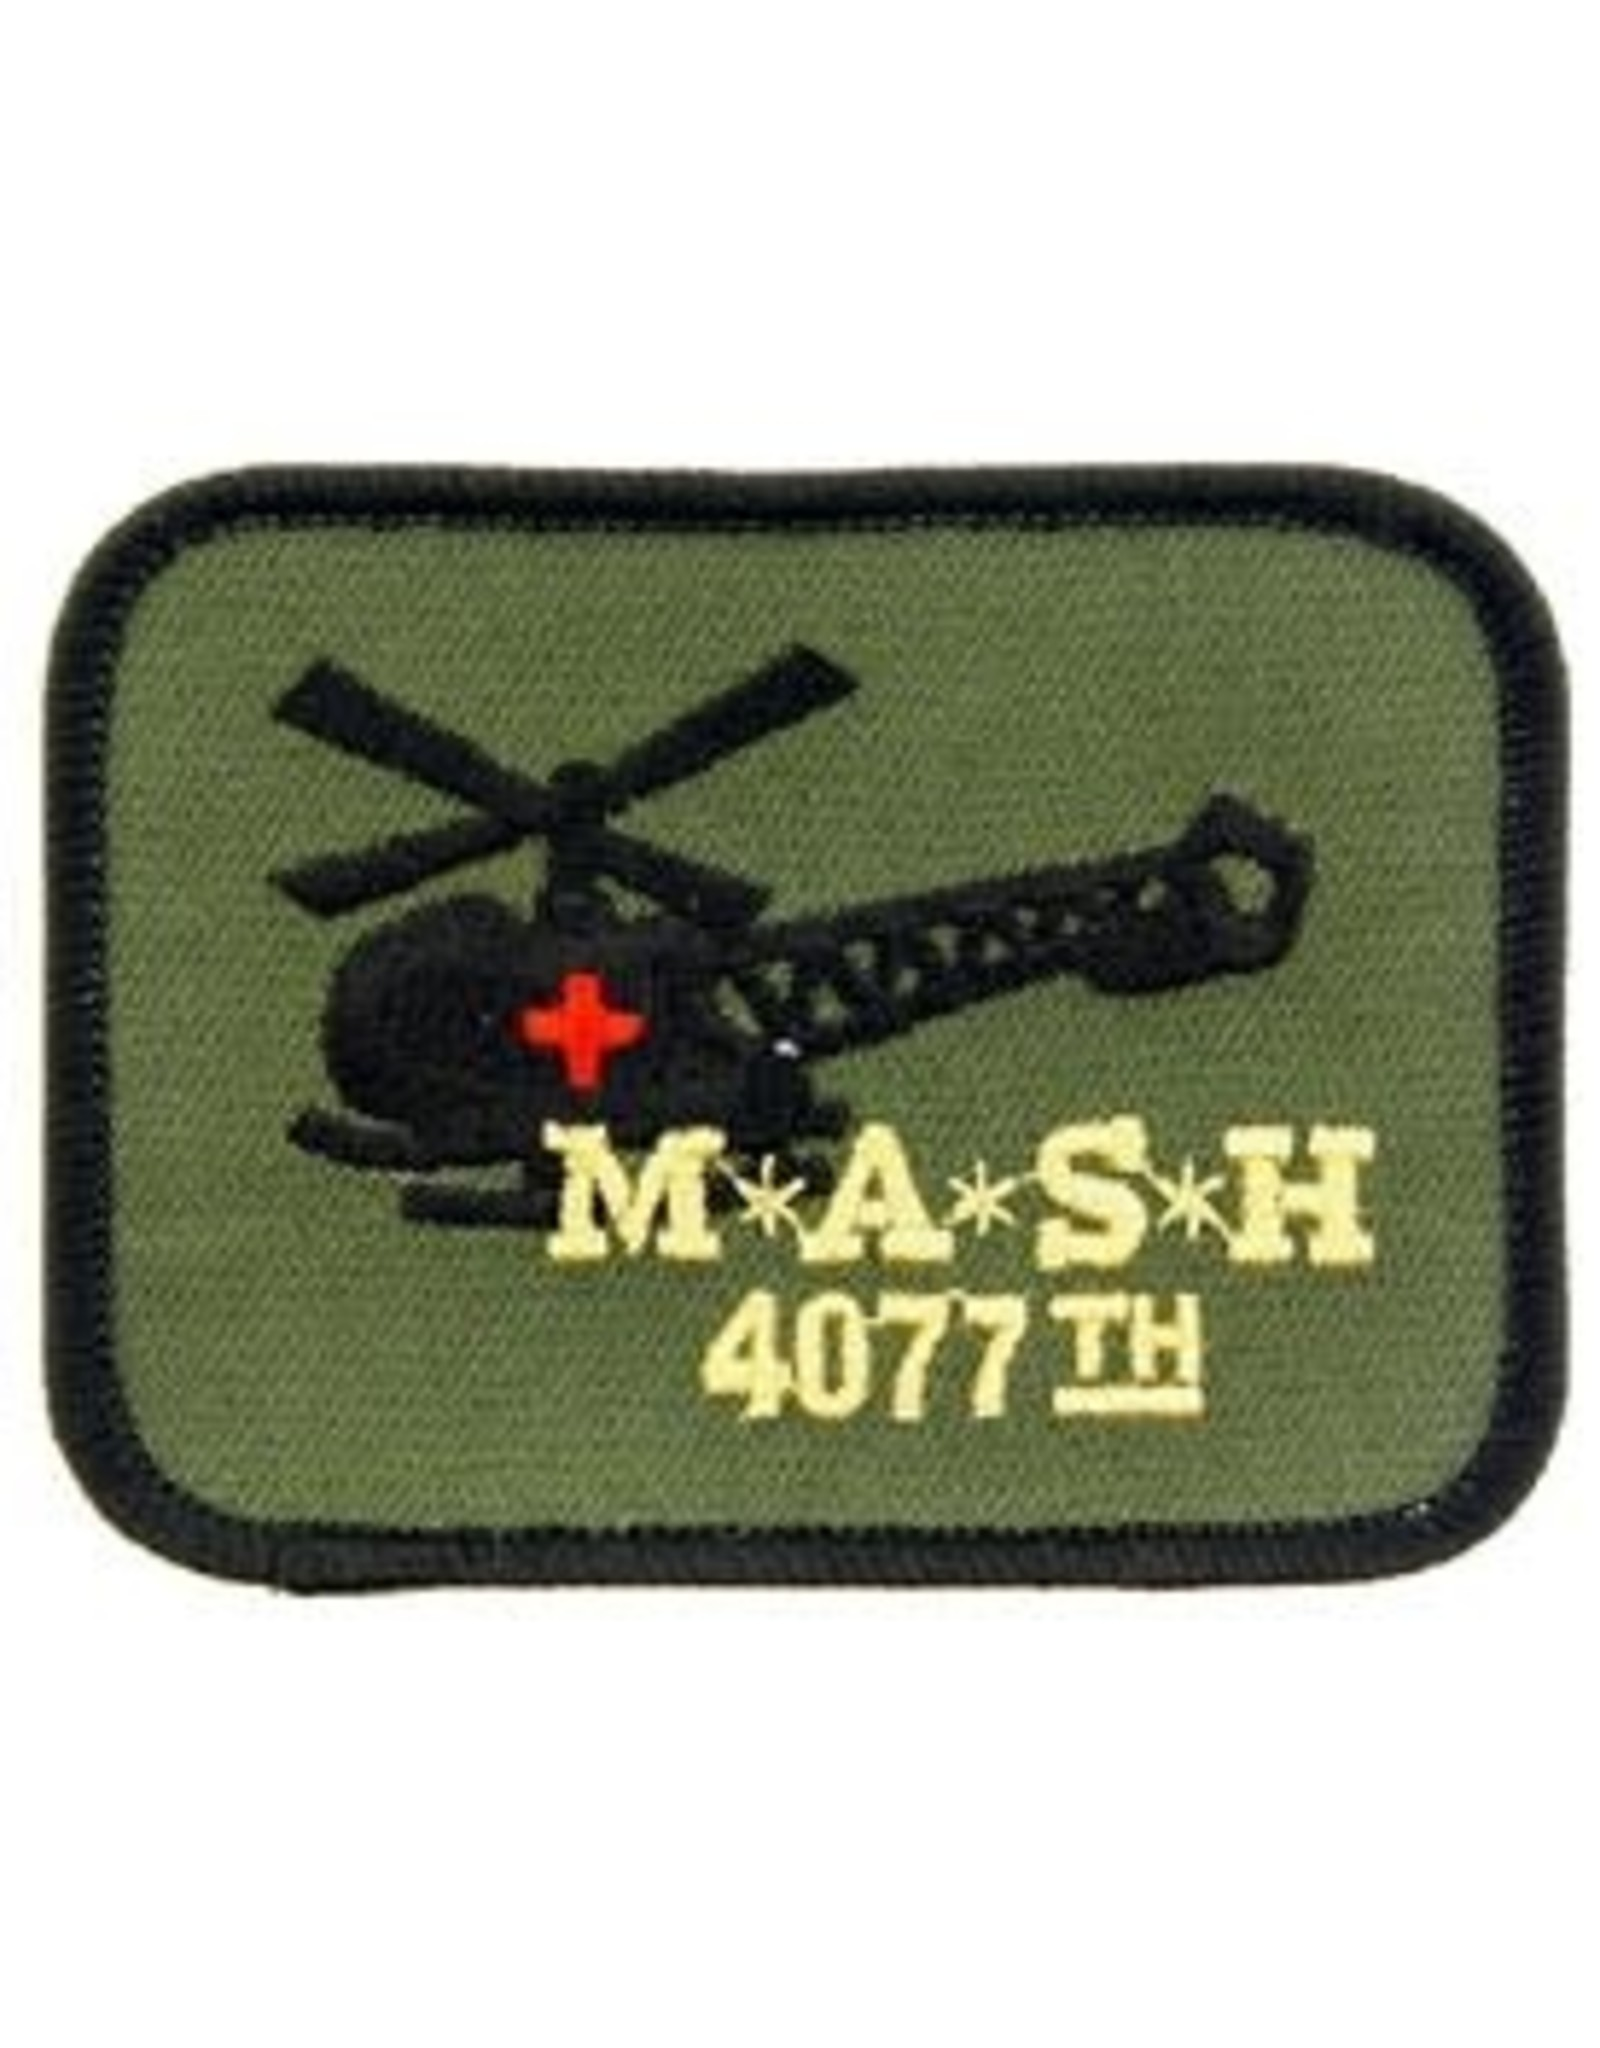 Patch - Army Mash 4077th